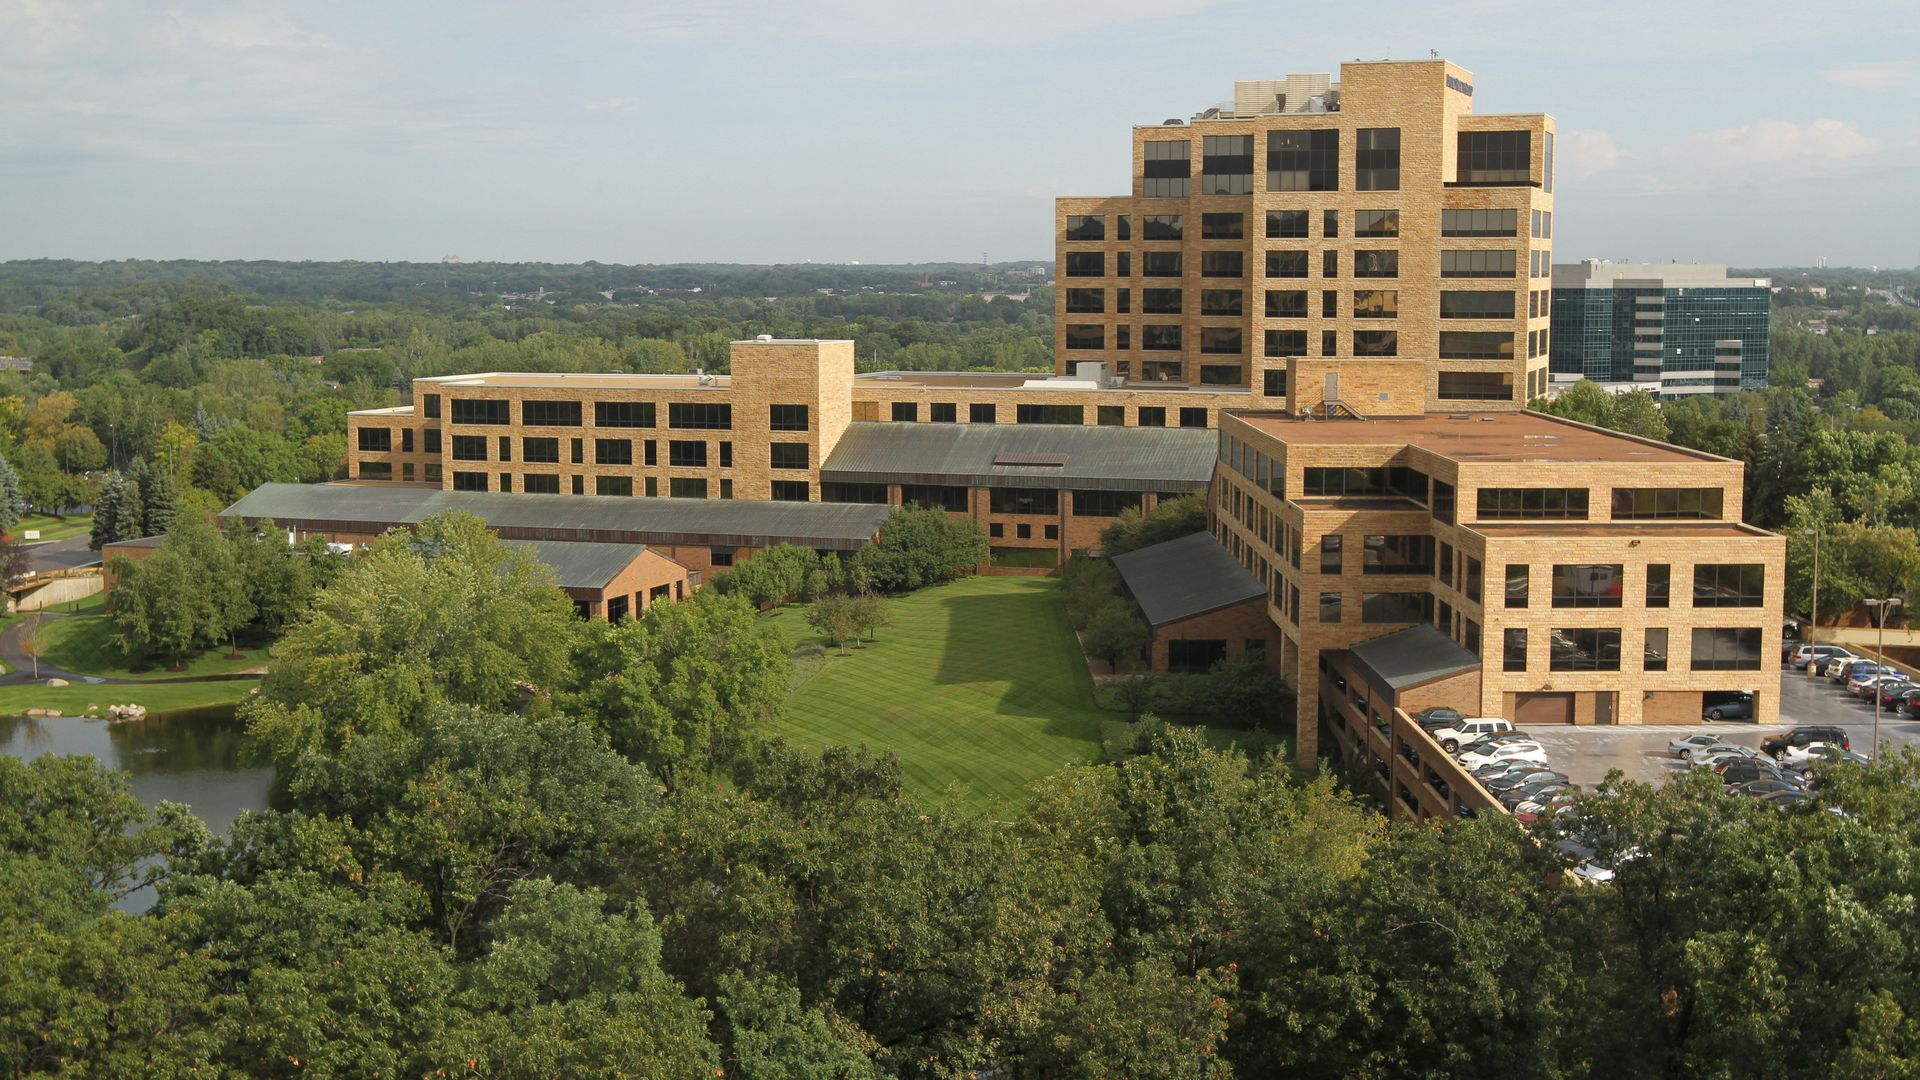 A group of buildings surrounded by trees, the UnitedHealth Group headquarters.